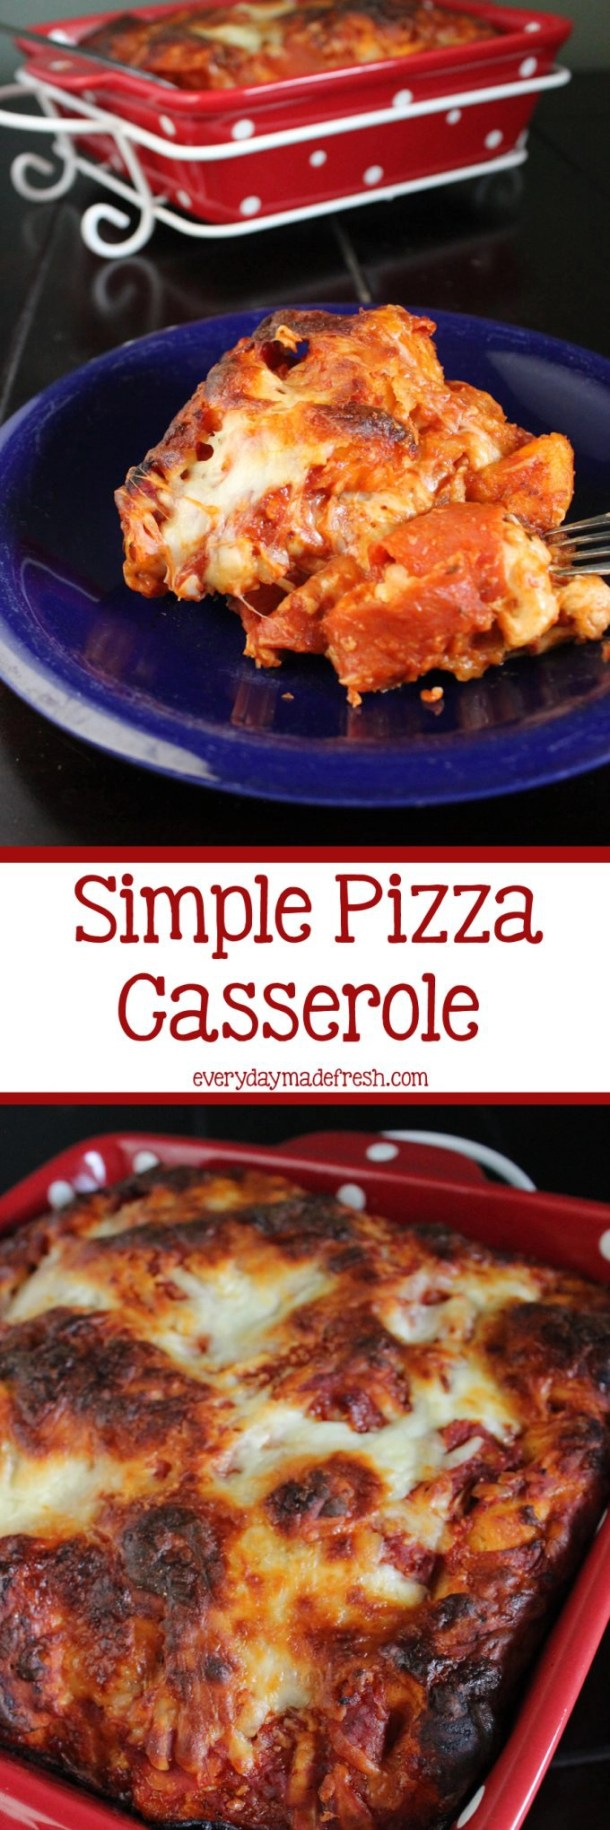 Simple Pizza Casserole is just that - a few ingredients, and you have a tasty pizza casserole that everybody is gonna love! | EverydayMadeFresh.com